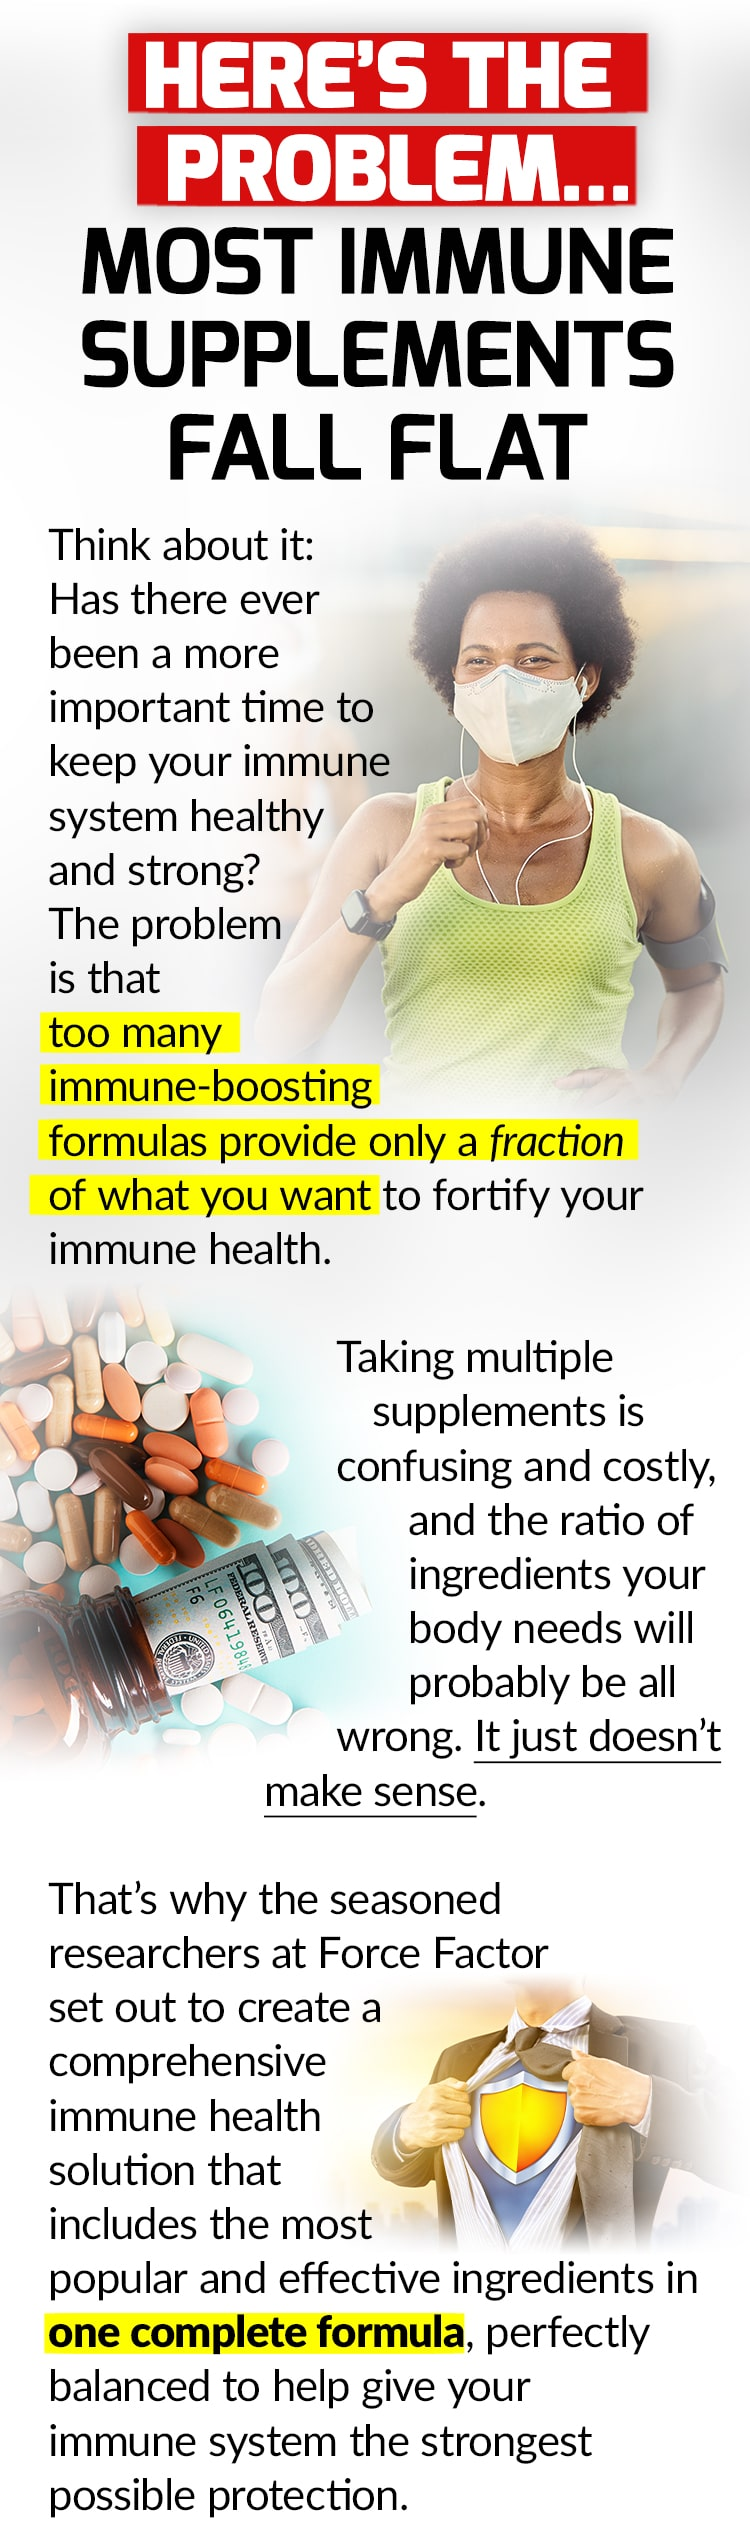 HERE'S THE PROBLEM… MOST IMMUNE SUPPLEMENTS FALL FLAT. Think about it: Has there ever been a more important time to keep your immune system healthy and strong? The problem is that too many immune-boosting formulas provide only a fraction of what you want to fortify your immune health. Taking multiple supplements is confusing and costly, and the ratio of ingredients your body needs will probably be all wrong. It just doesn't make sense. That's why the seasoned researchers at Force Factor set out to create a comprehensive immune health solution that includes the most popular and effective ingredients in one complete formula, perfectly balanced to help give your immune system the strongest possible protection.